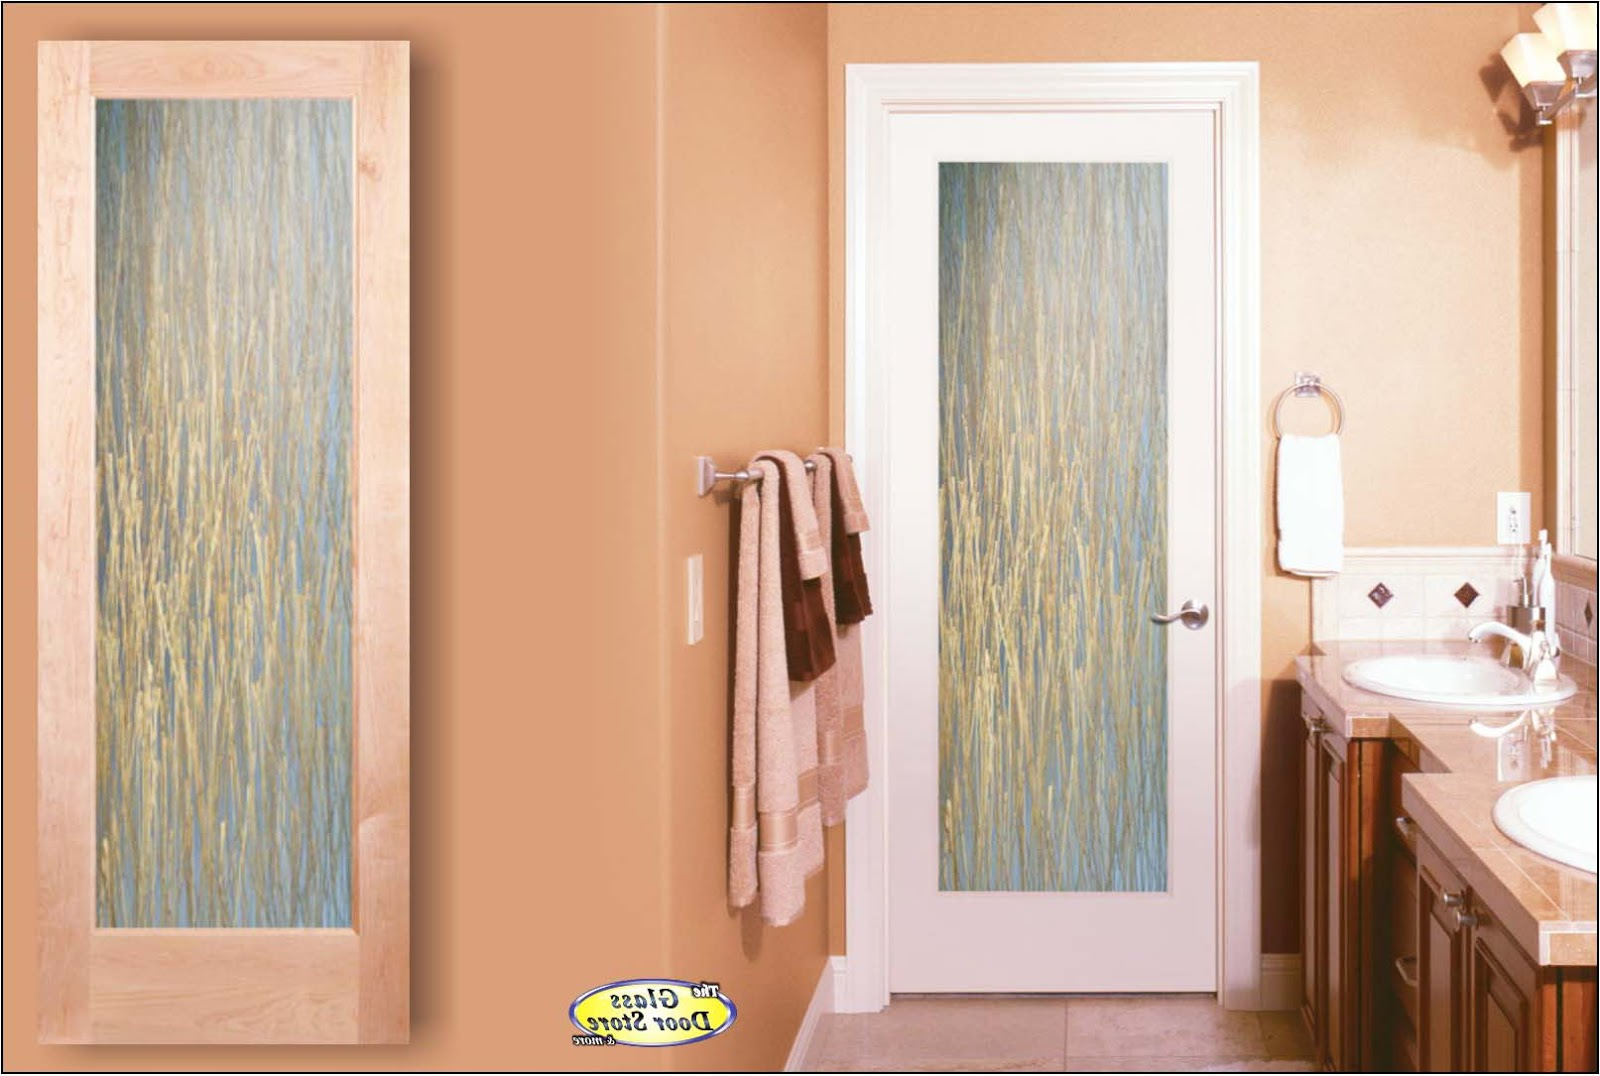 Interior glass doors - Even Though Many People Think That The Interior Glass French Doors Are Something